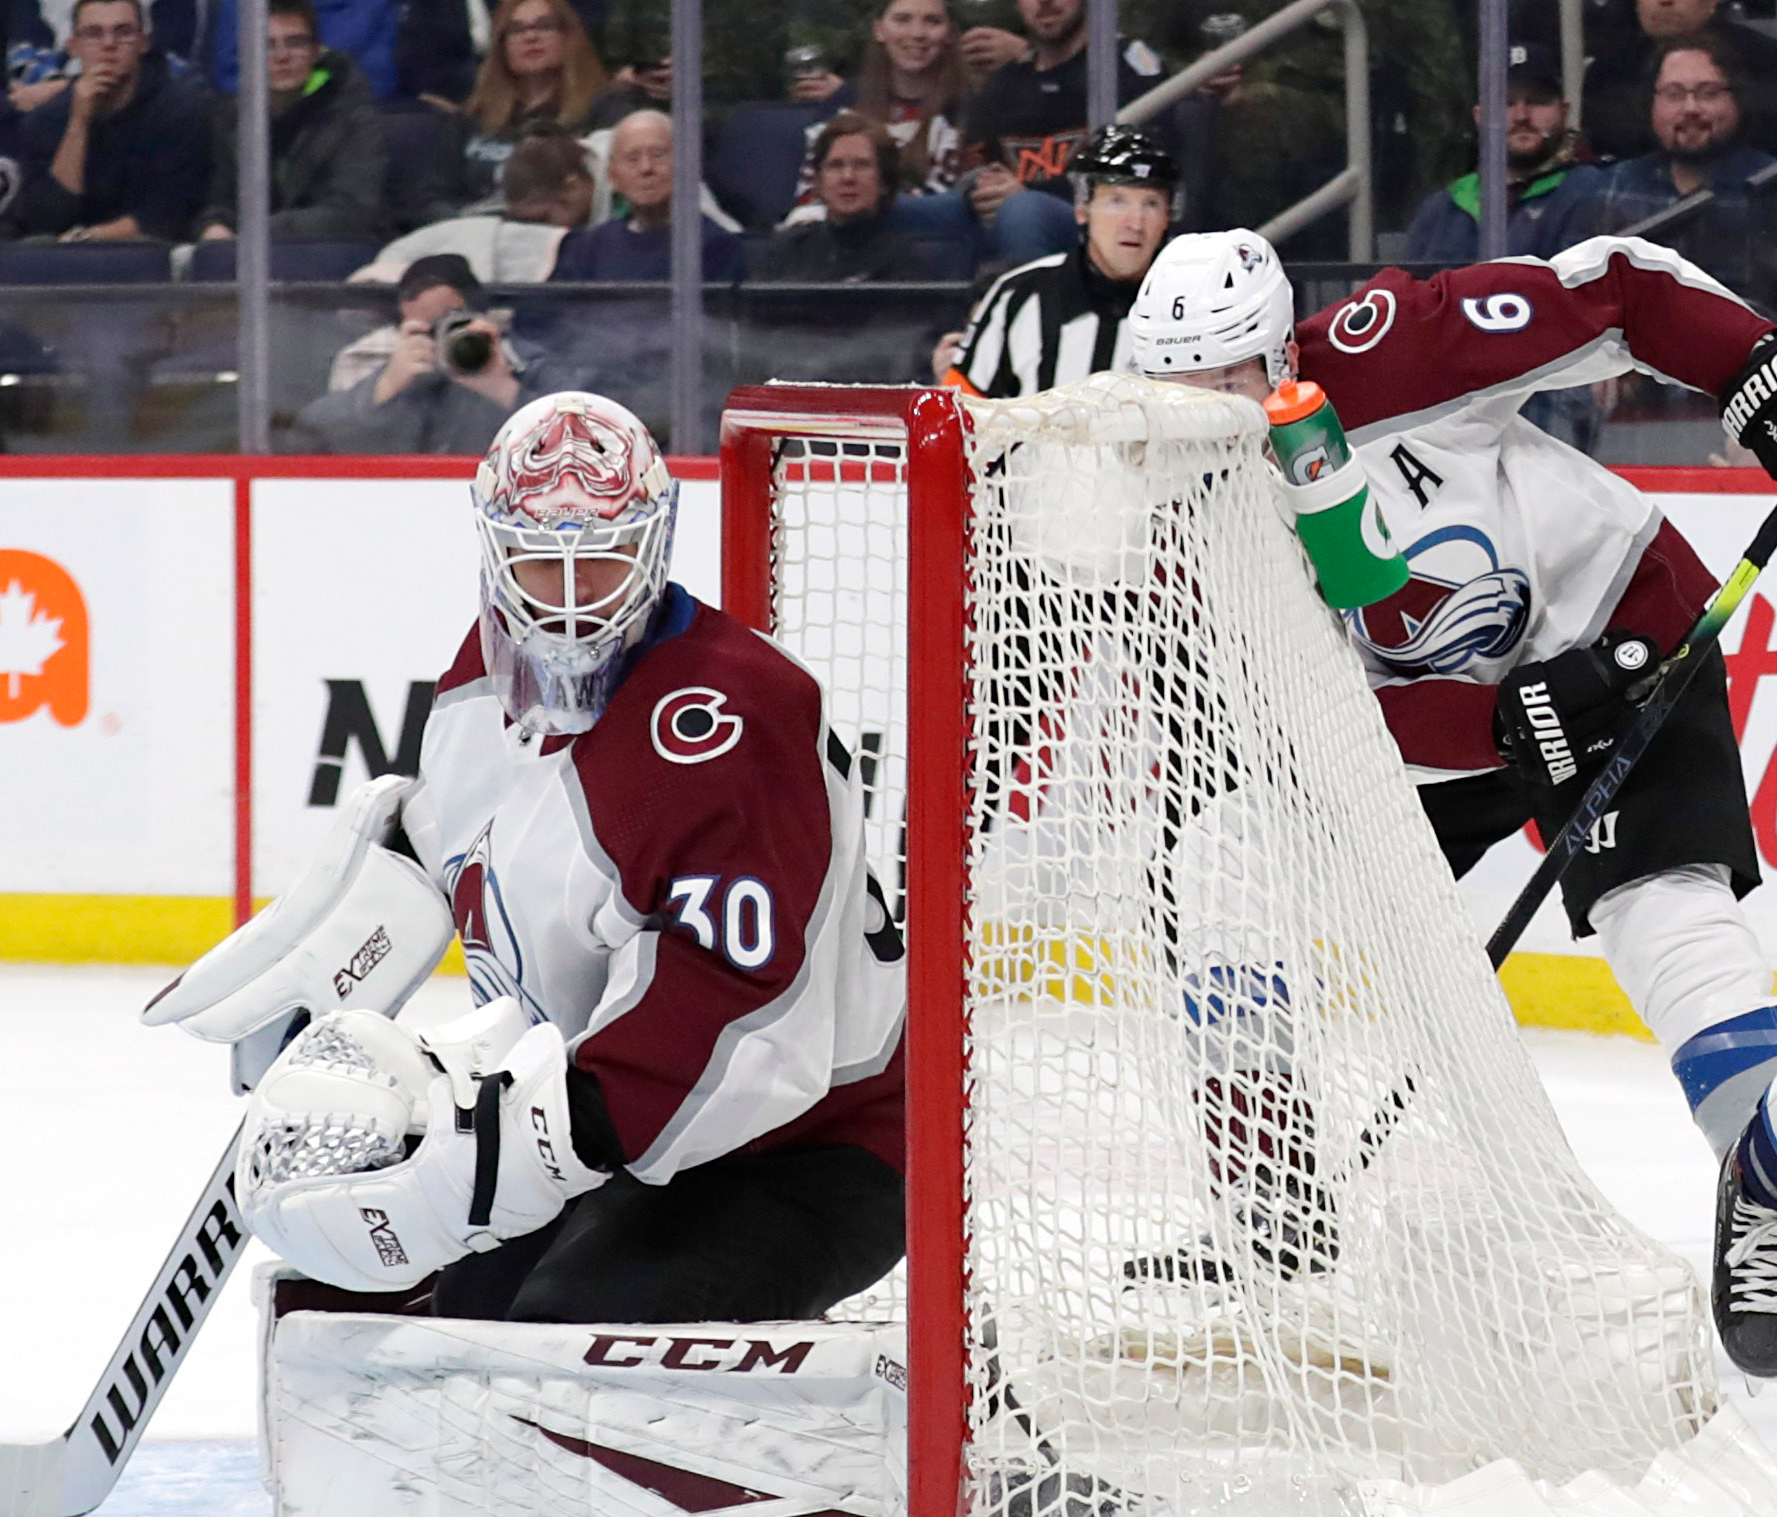 Colorado Avalanche get unexpected shutout from Adam Werner